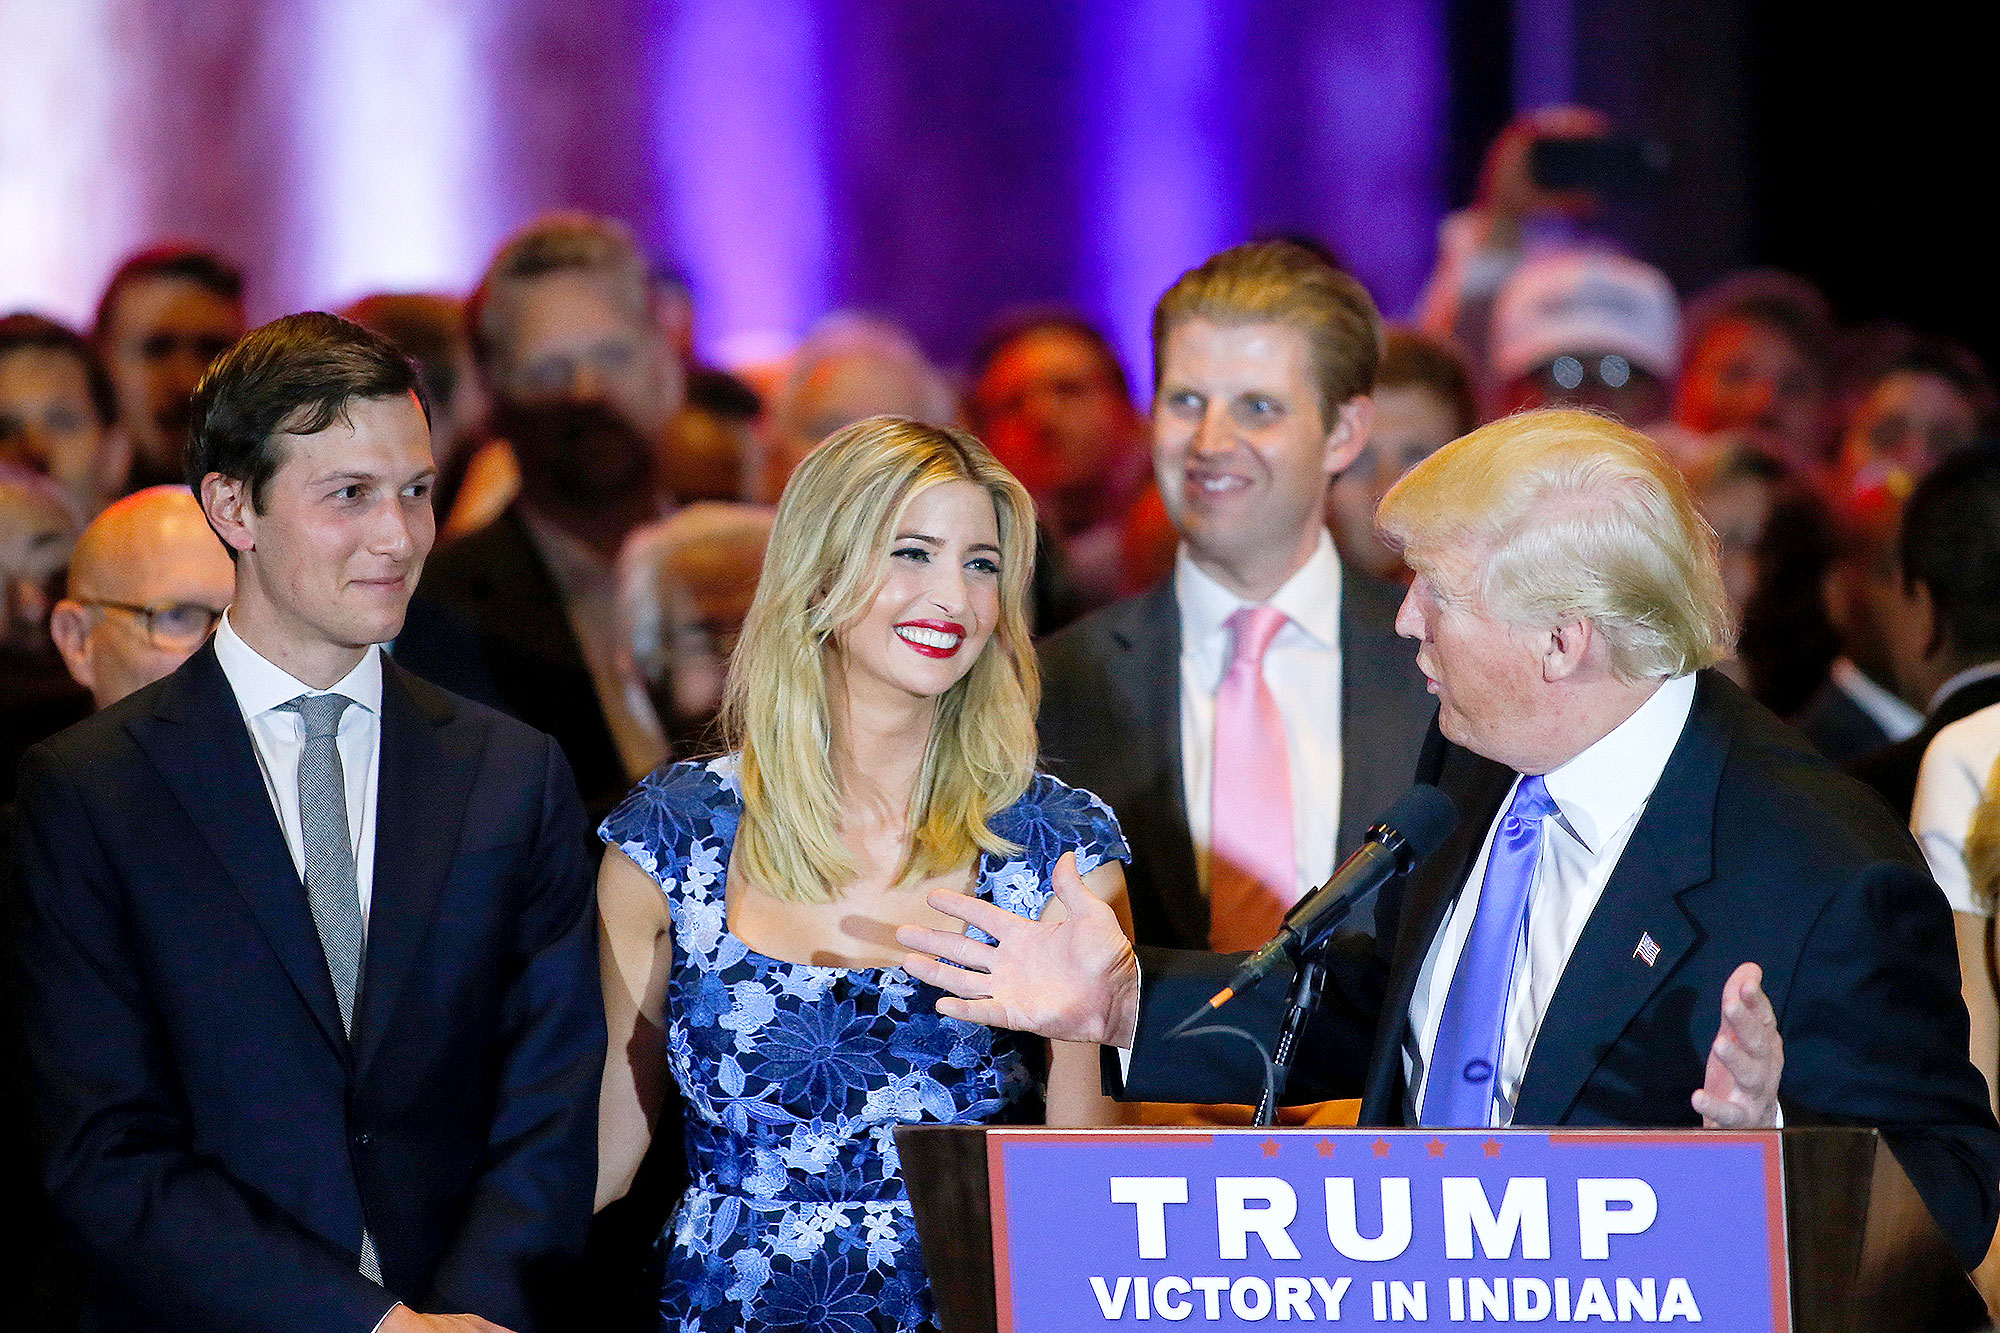 Jared Kushner (L) looks on as his wife Ivanka Trump smiles at her father Republican presidential front runner Donald Trump during his speech to supporters and the media at Trump Tower in Manhattan following his victory in the Indiana primary on May 03, 2016